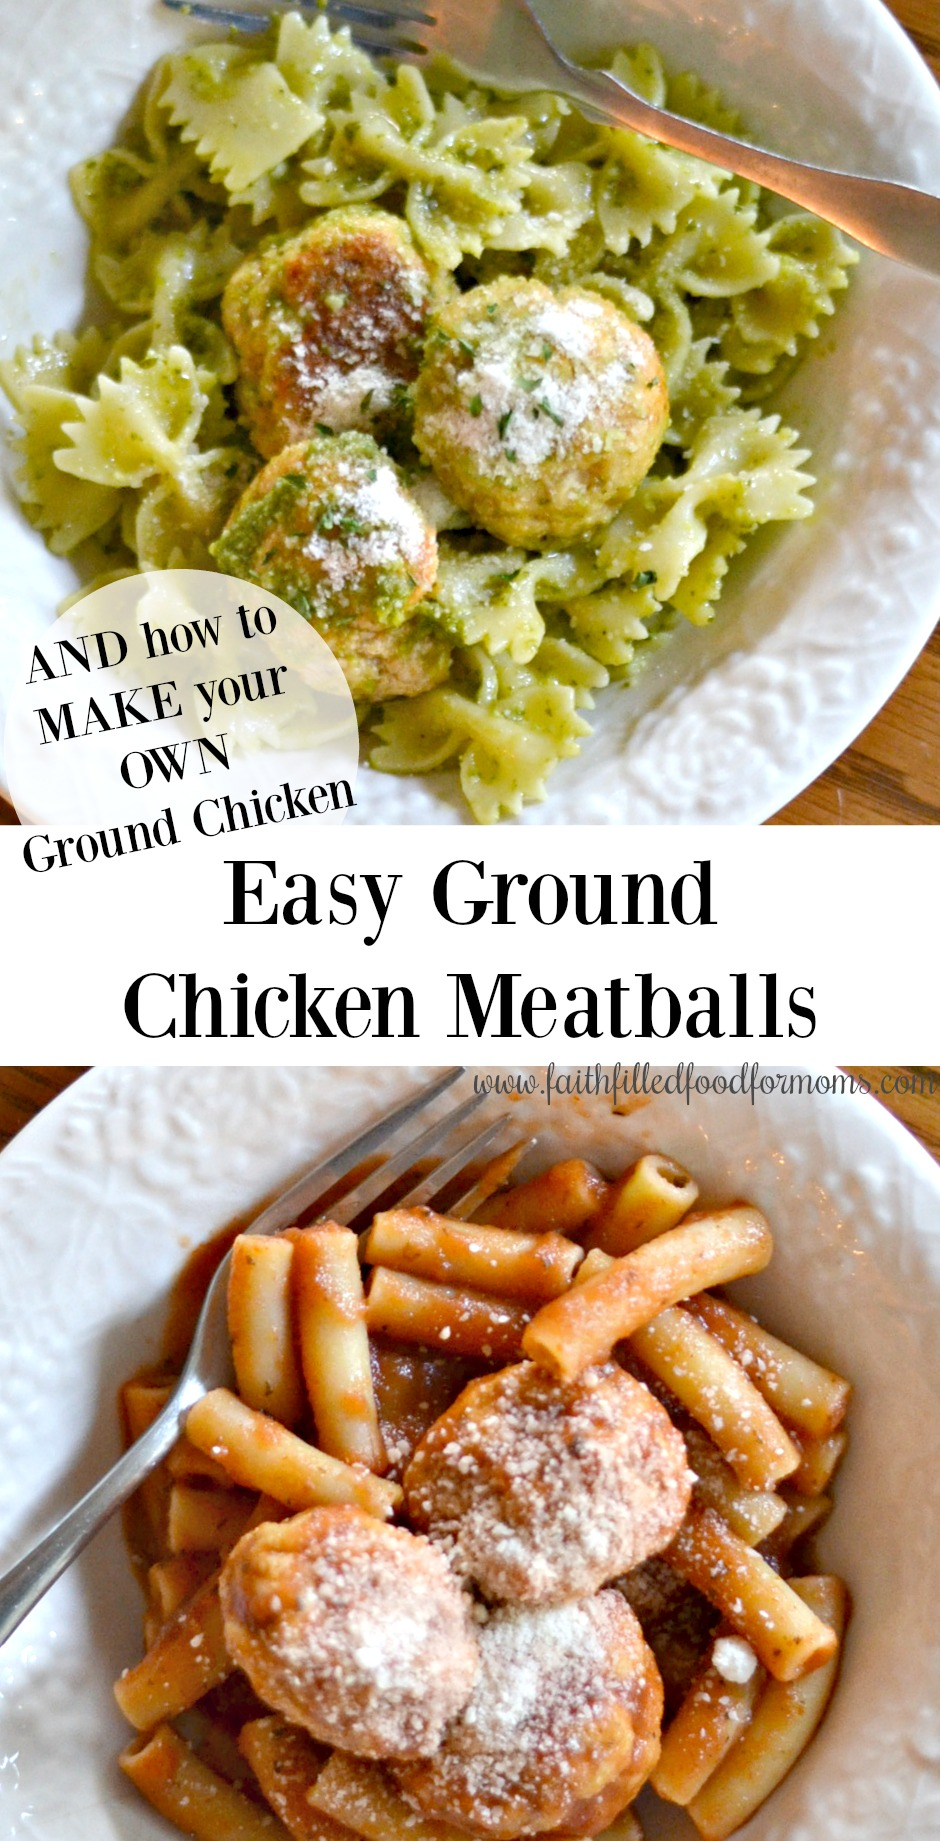 Easy Ground Chicken Meatballs Recipe